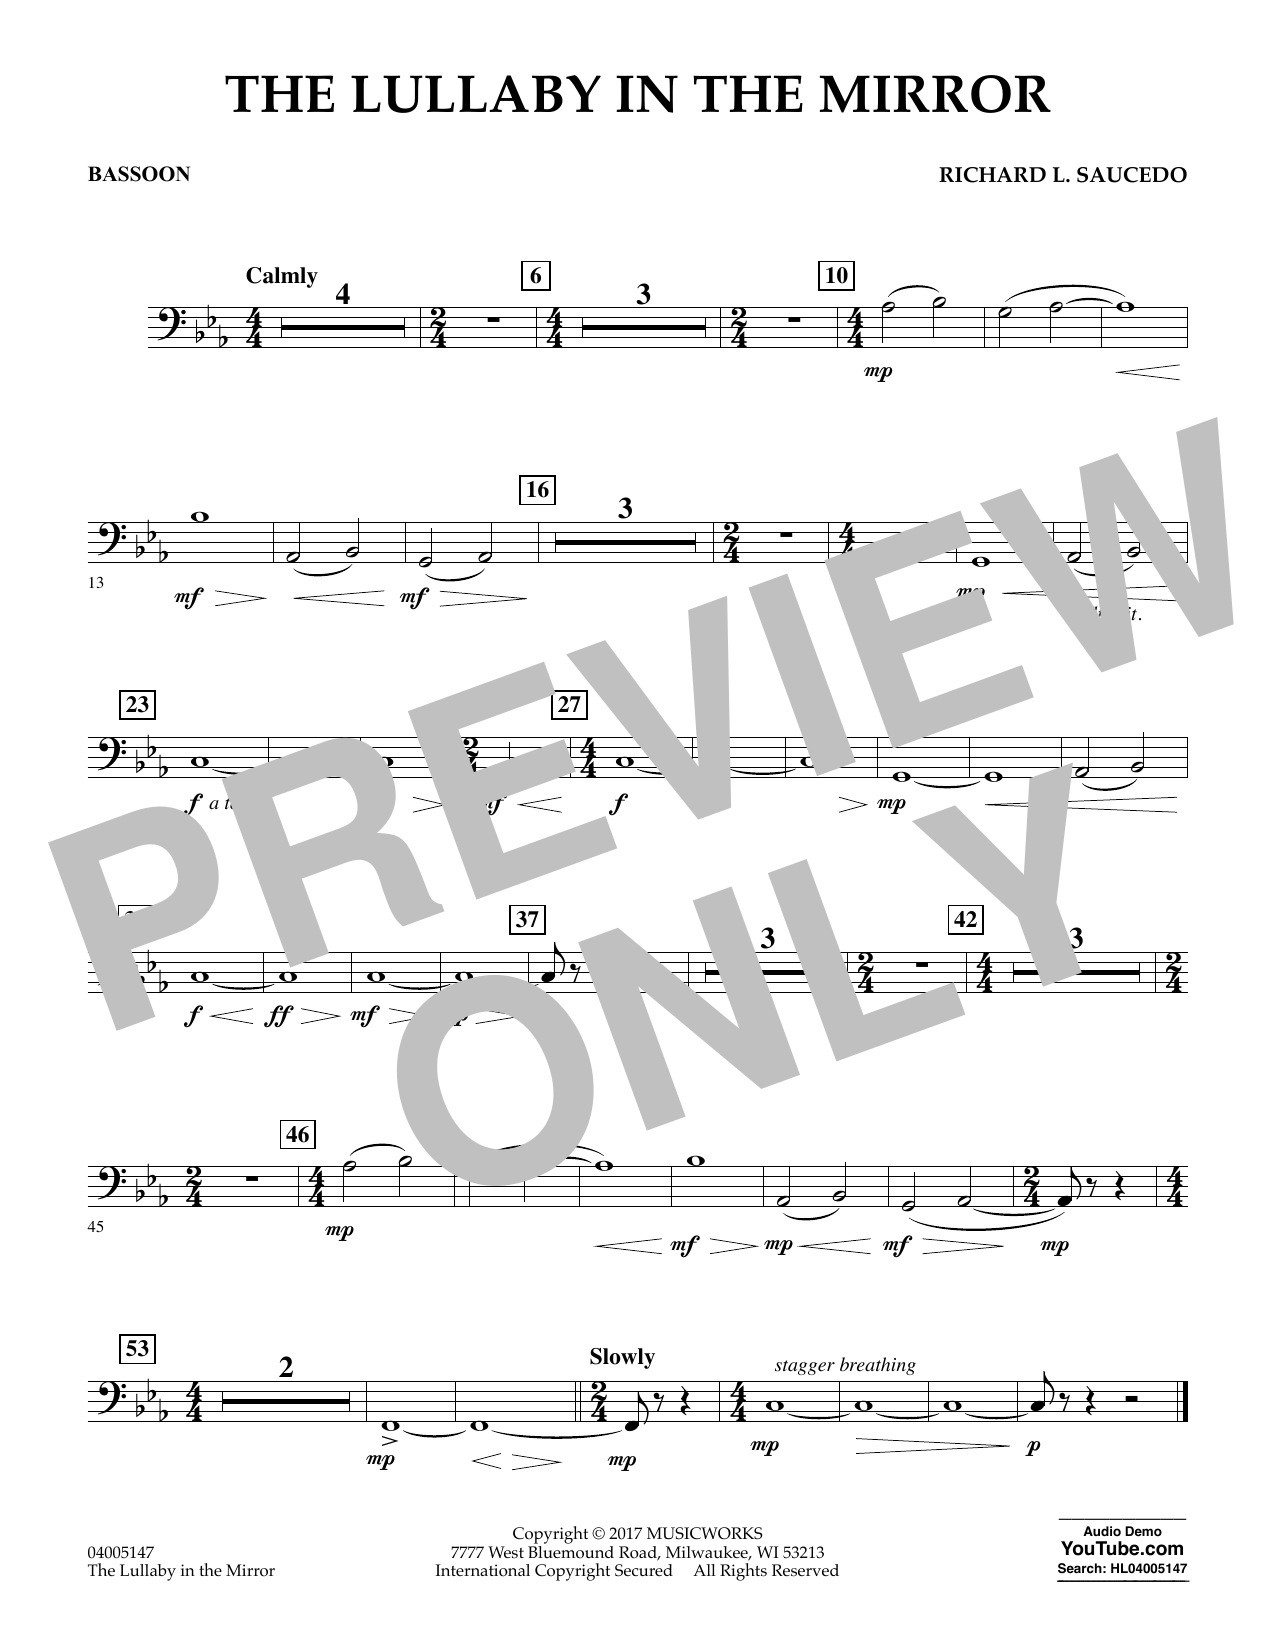 Richard L. Saucedo The Lullaby in the Mirror - Bassoon sheet music notes and chords. Download Printable PDF.